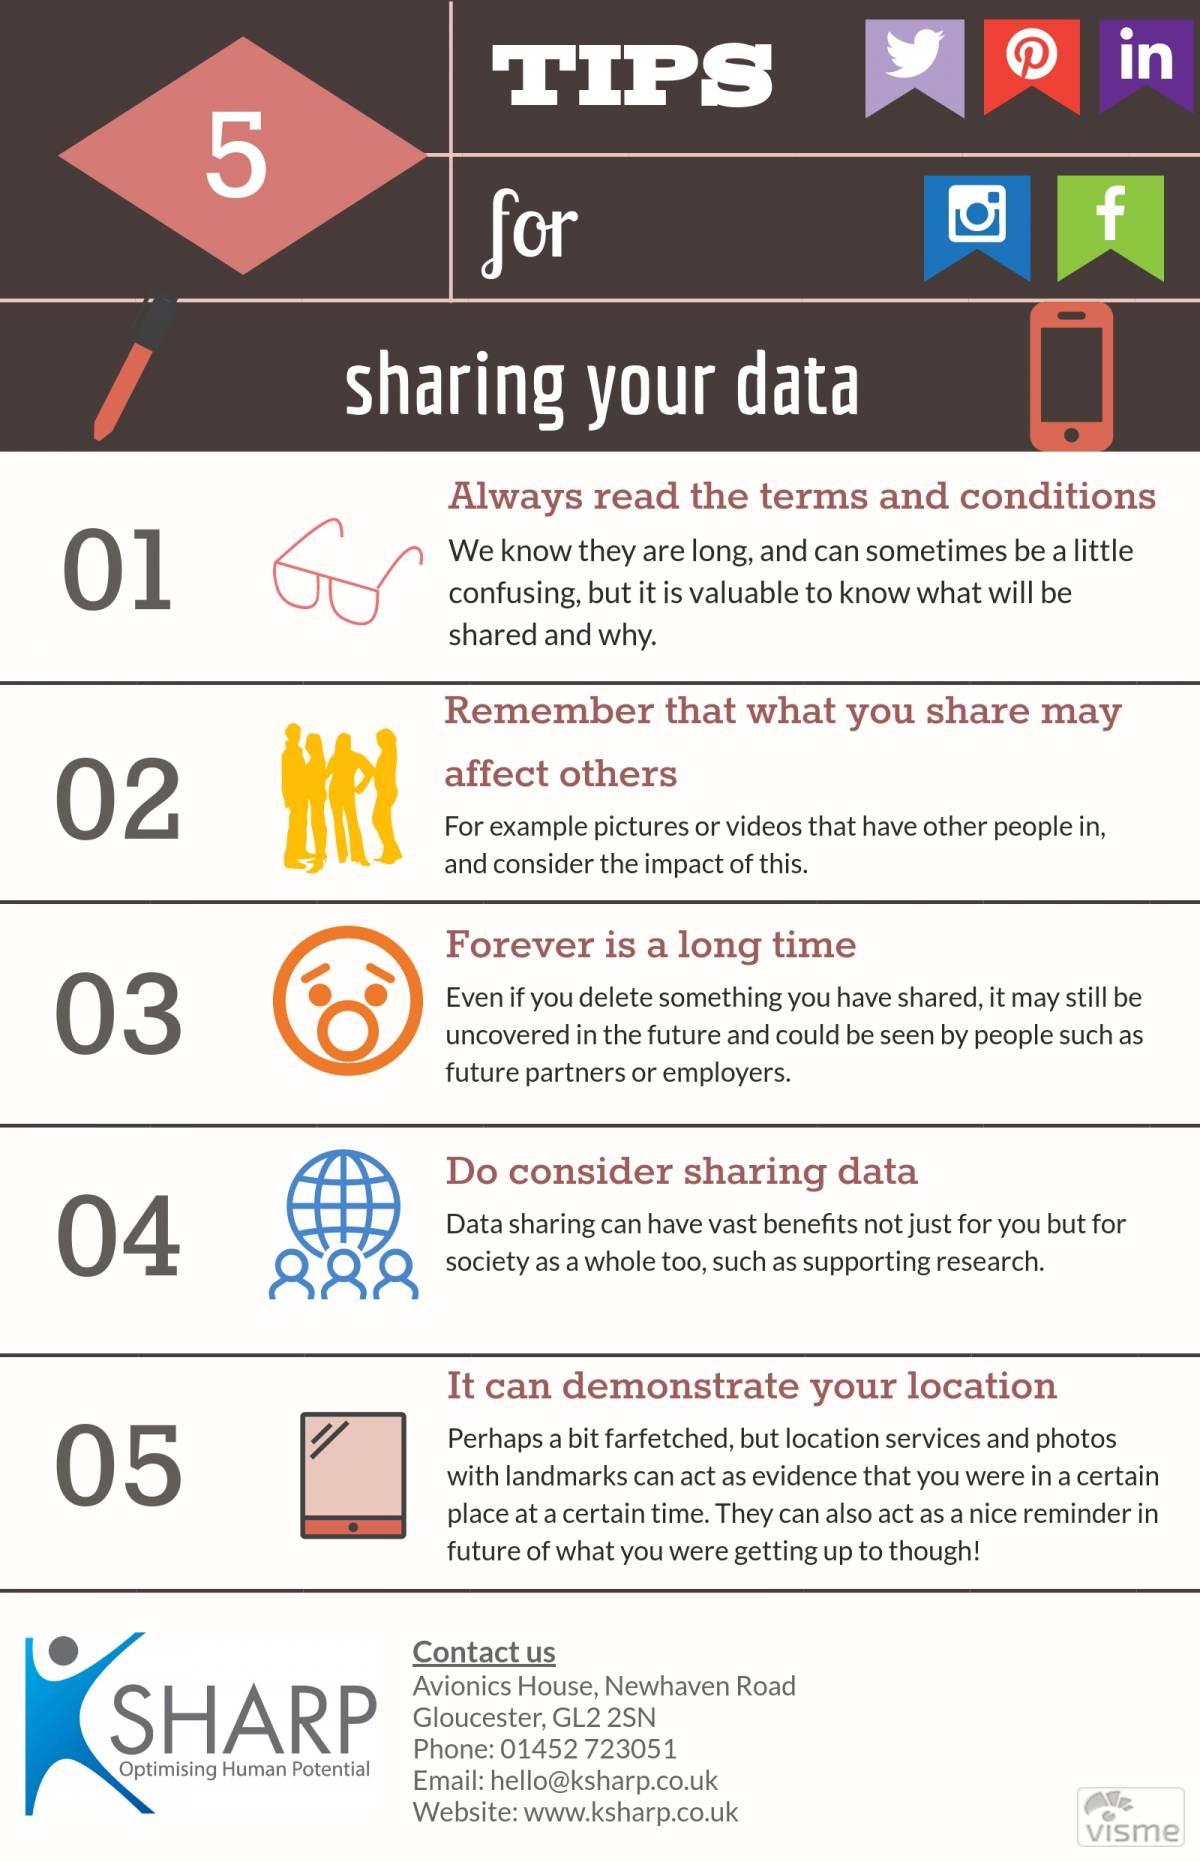 What are the personal impacts of data sharing? Image